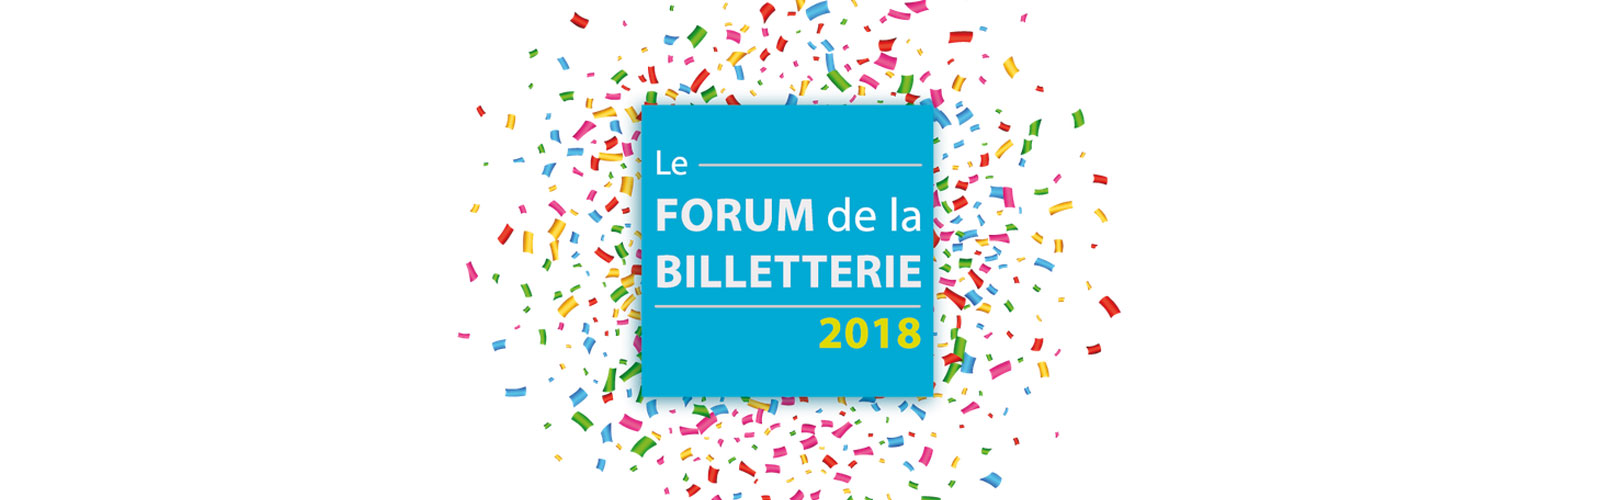 forum-billetterie-2018